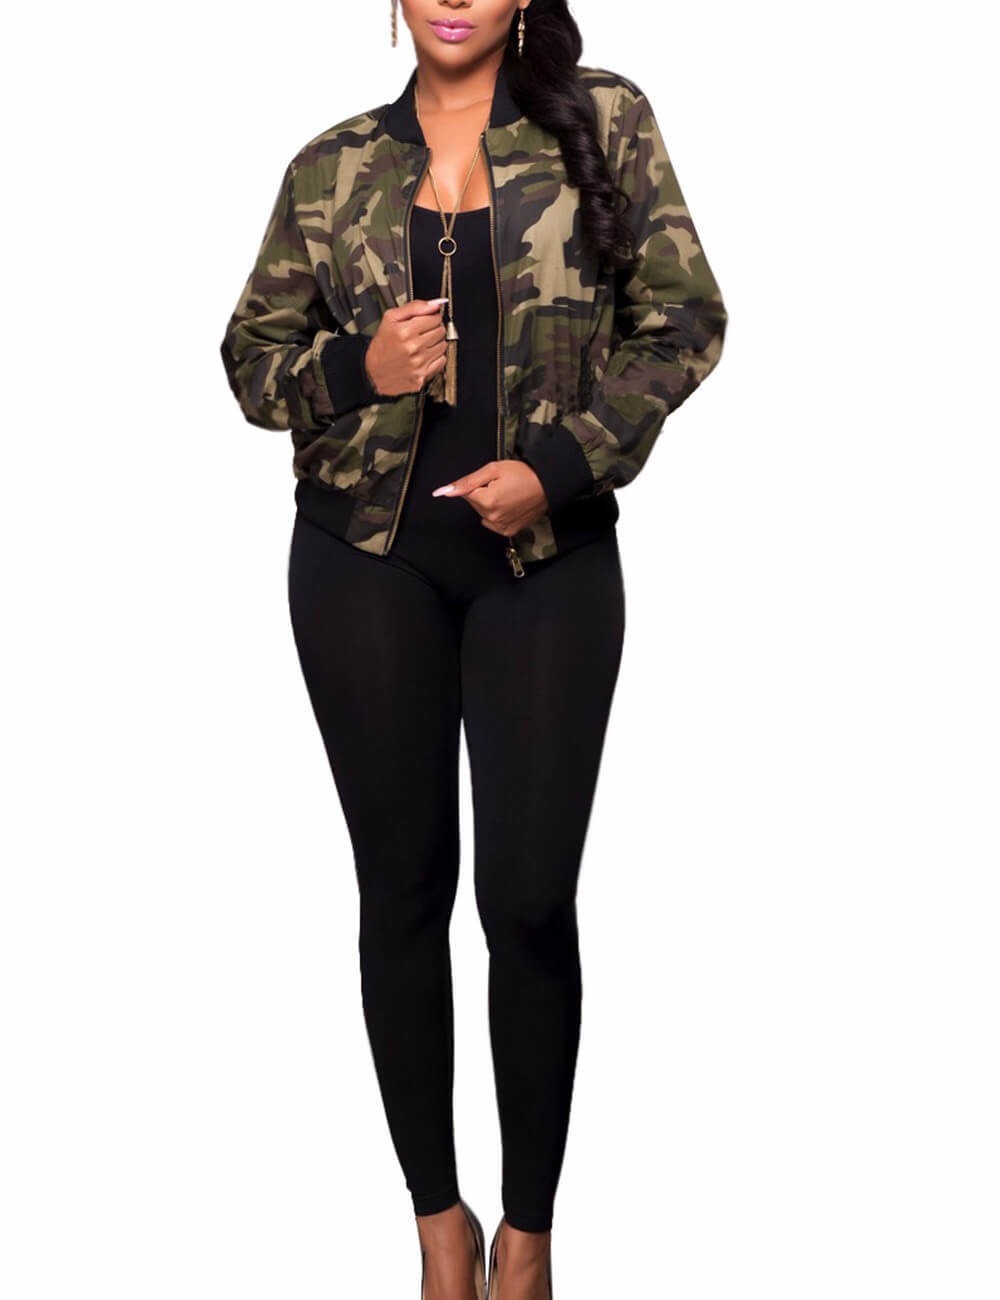 Women's Classic Casual Long Sleeve Camo Lightweight Zipper Short Jacket